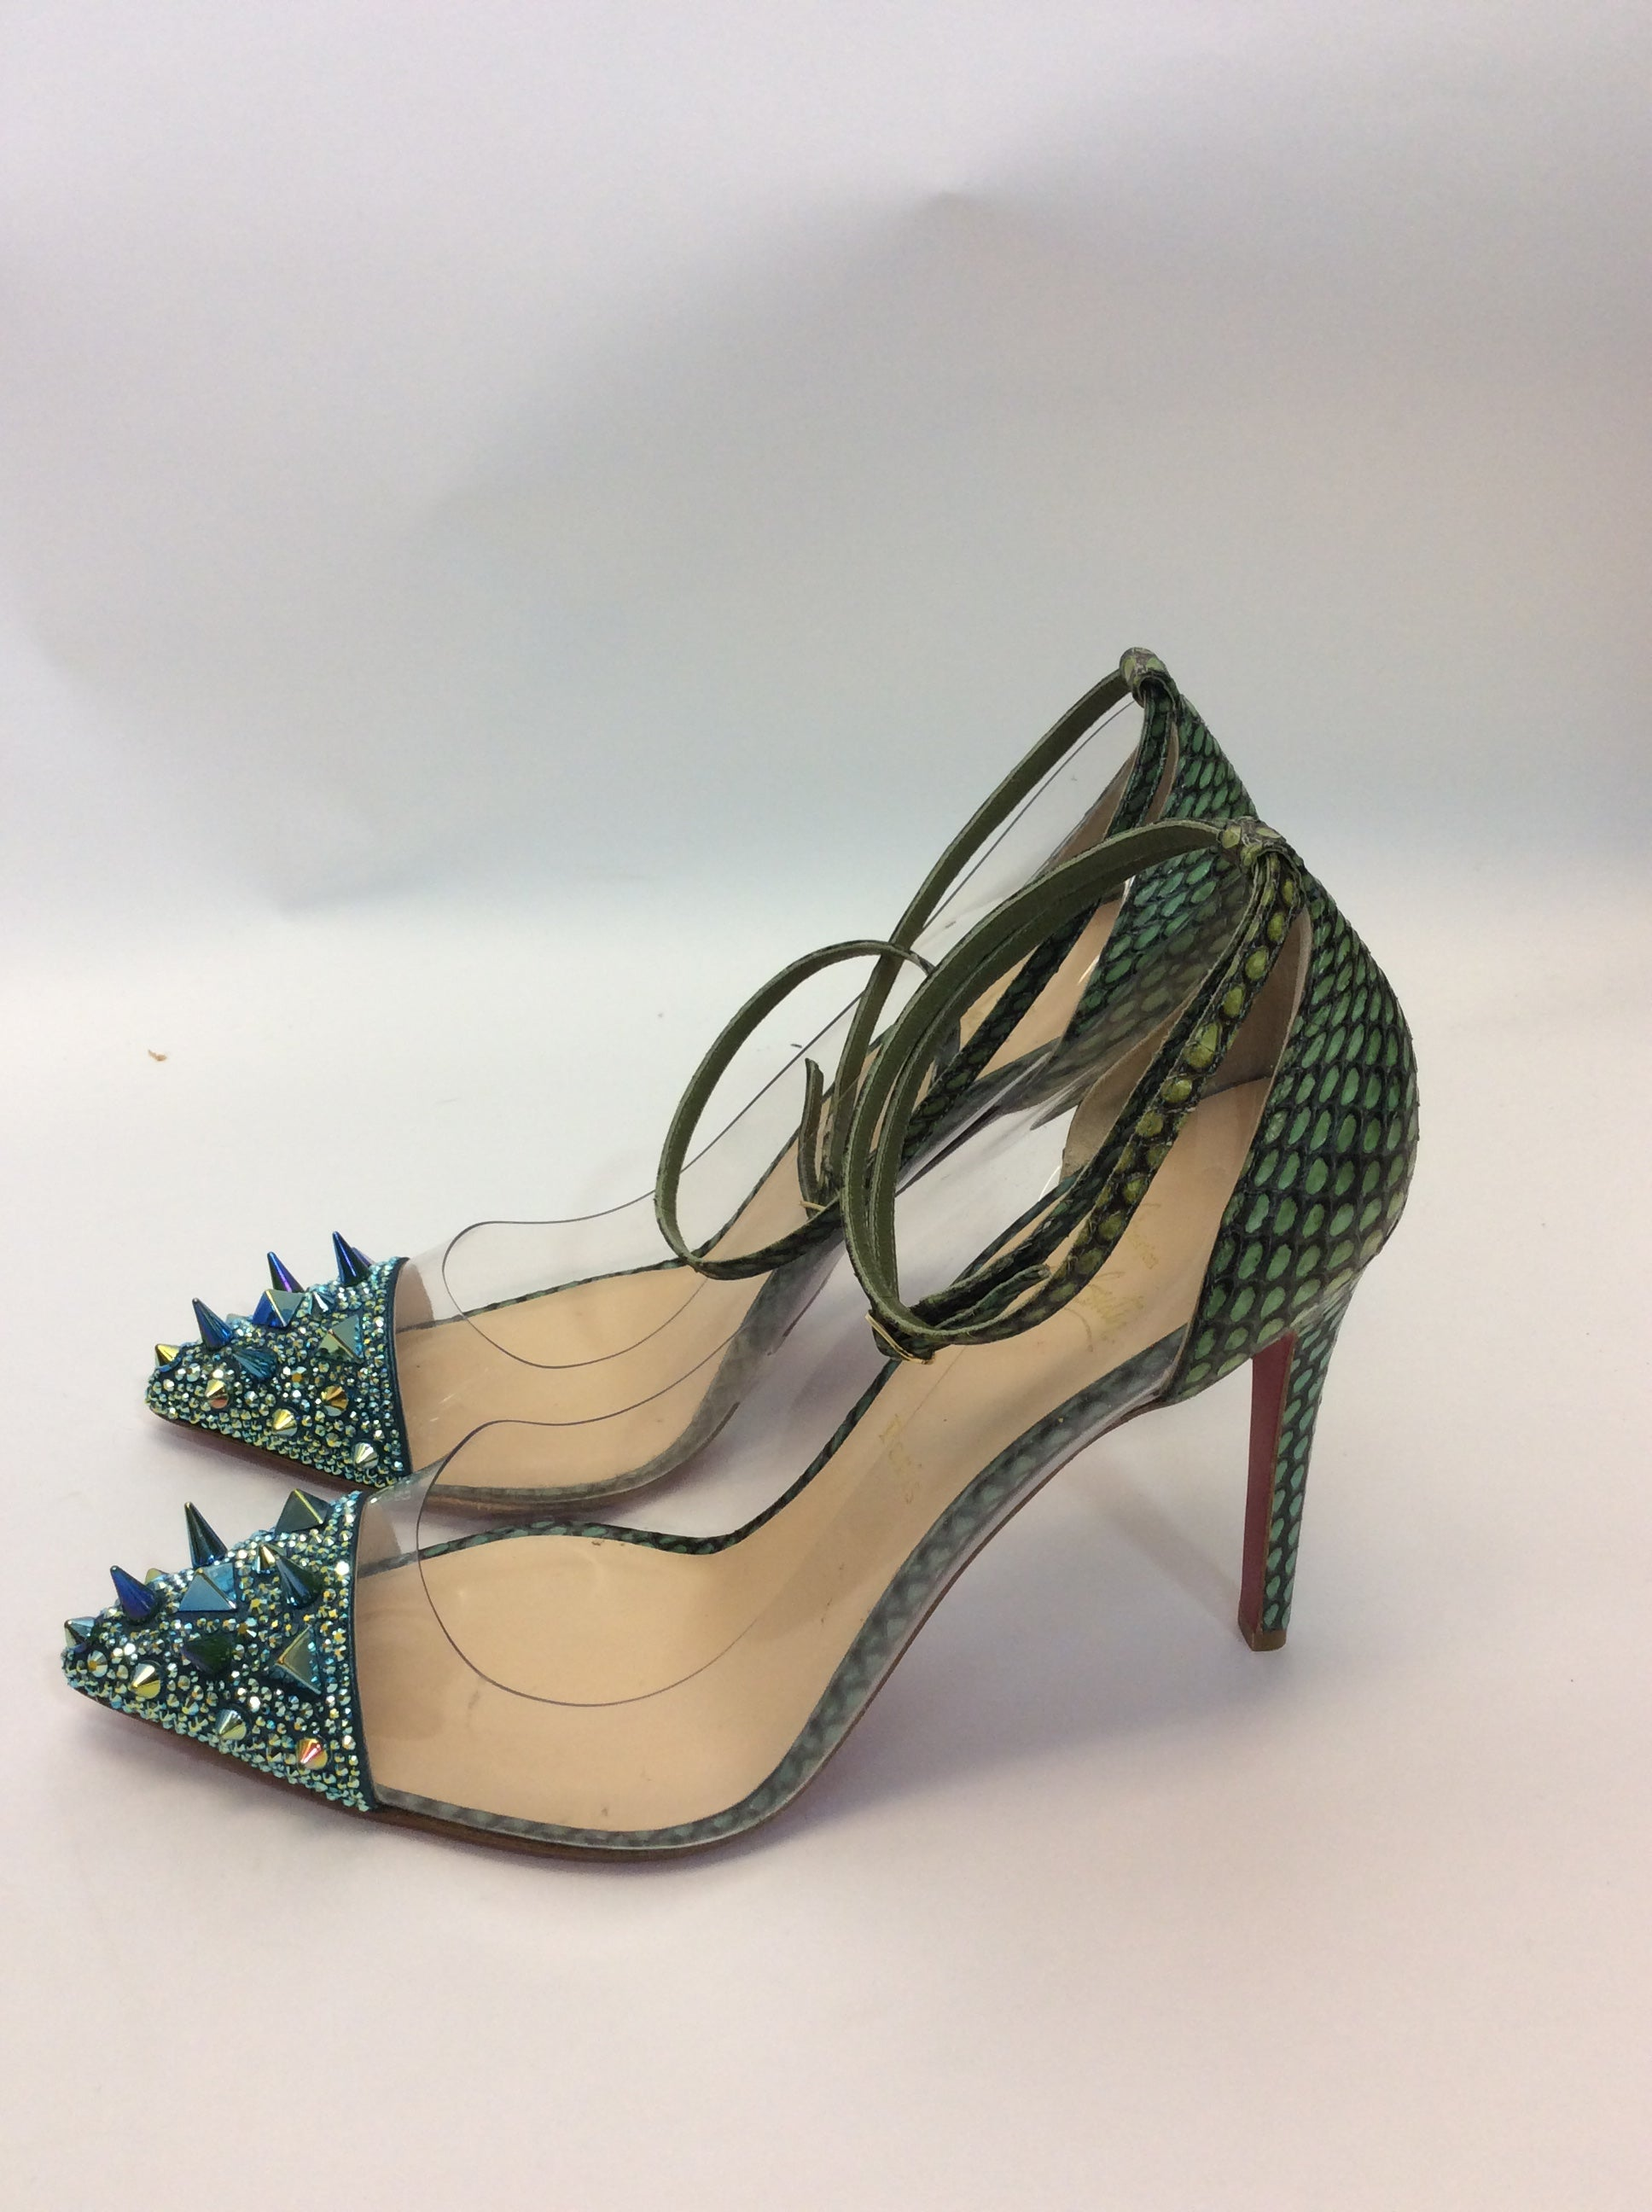 85c4170d4f0 Christian Louboutin NIB Just Picks 100 Pot Pourri PVC Cobra Version Green  Pumps